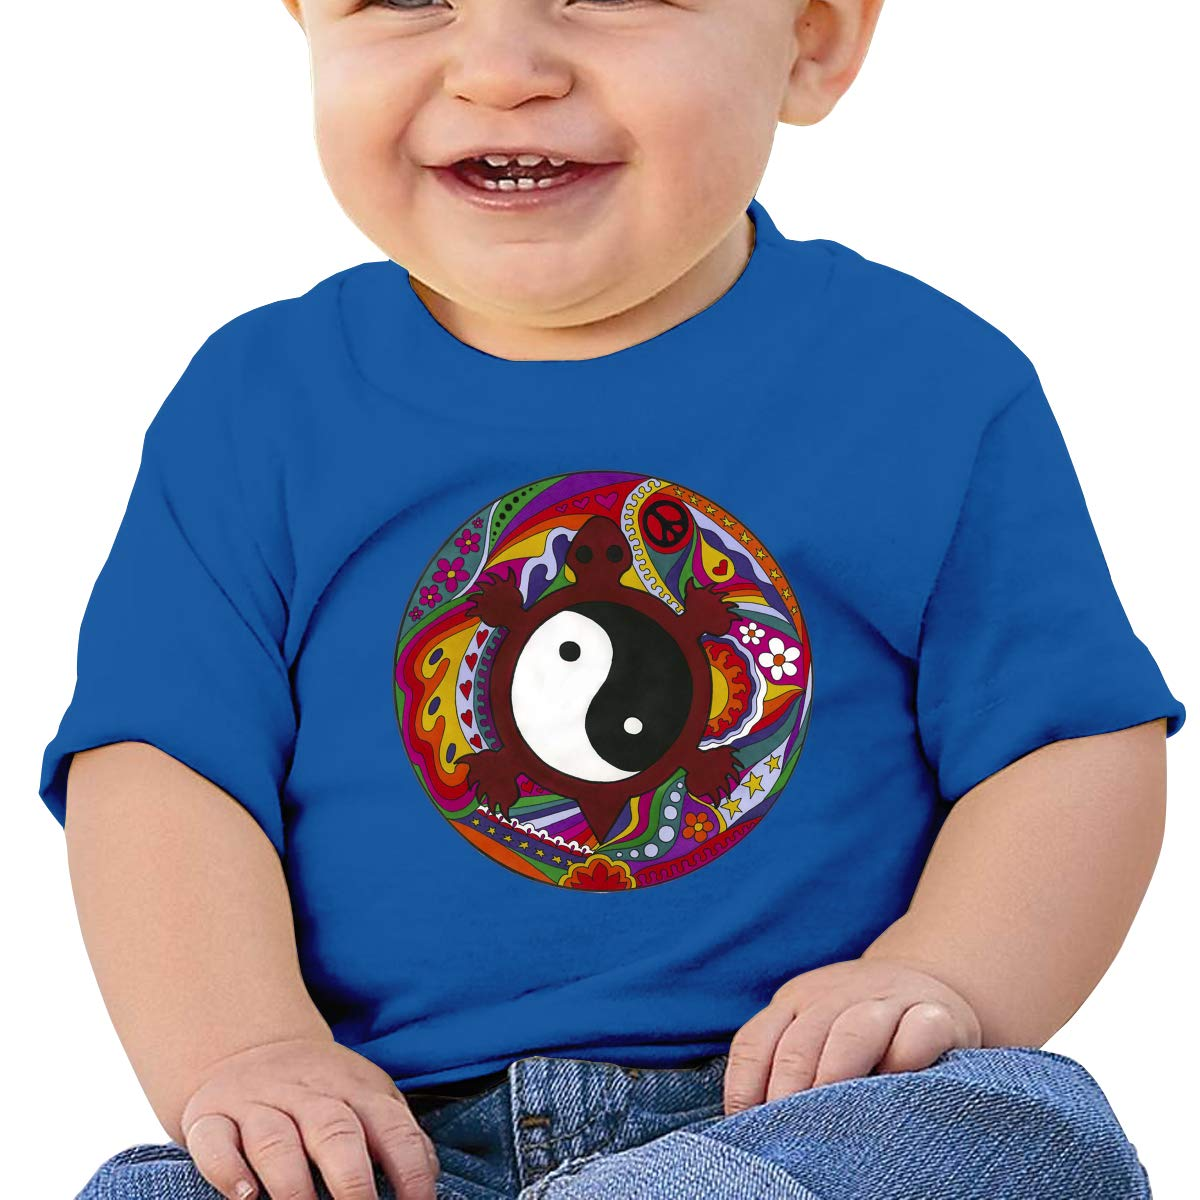 XHX403 Psychedelic Turtle Yin Yang Infant Kids T Shirt Cotton Tee Toddler Baby 6-18M